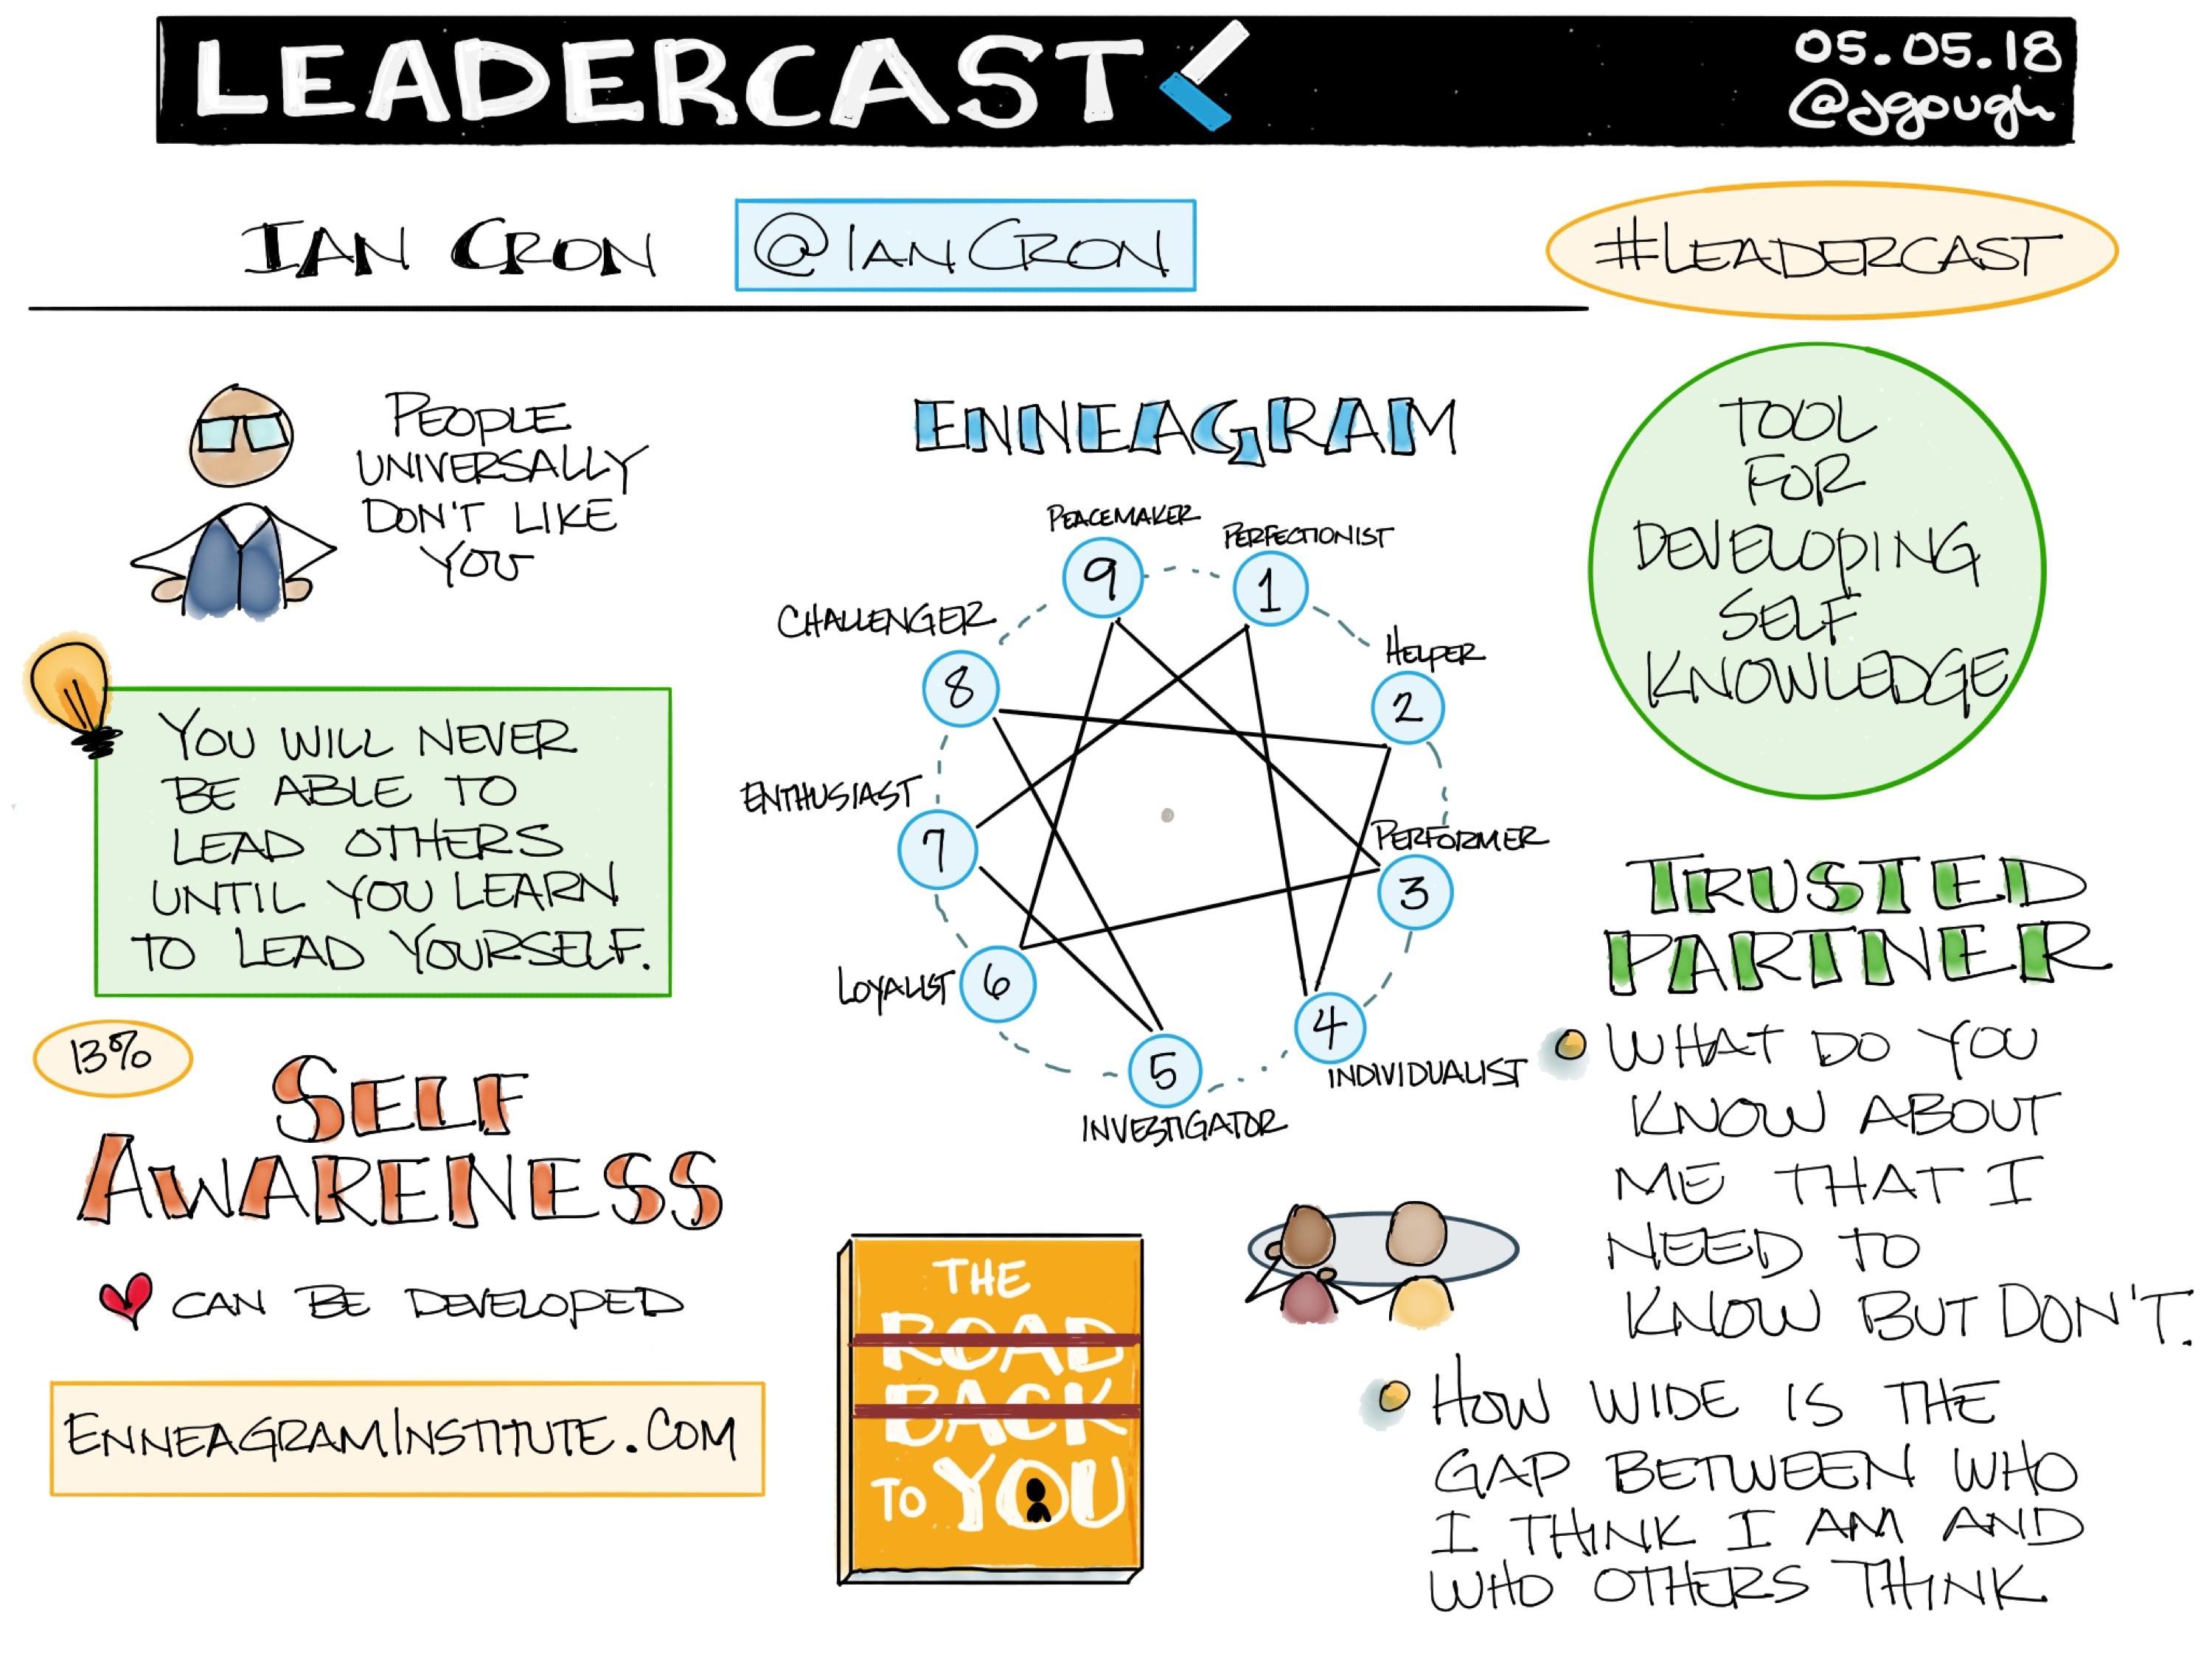 #Leadercast session with @IanCron: Self-awareness can be developed